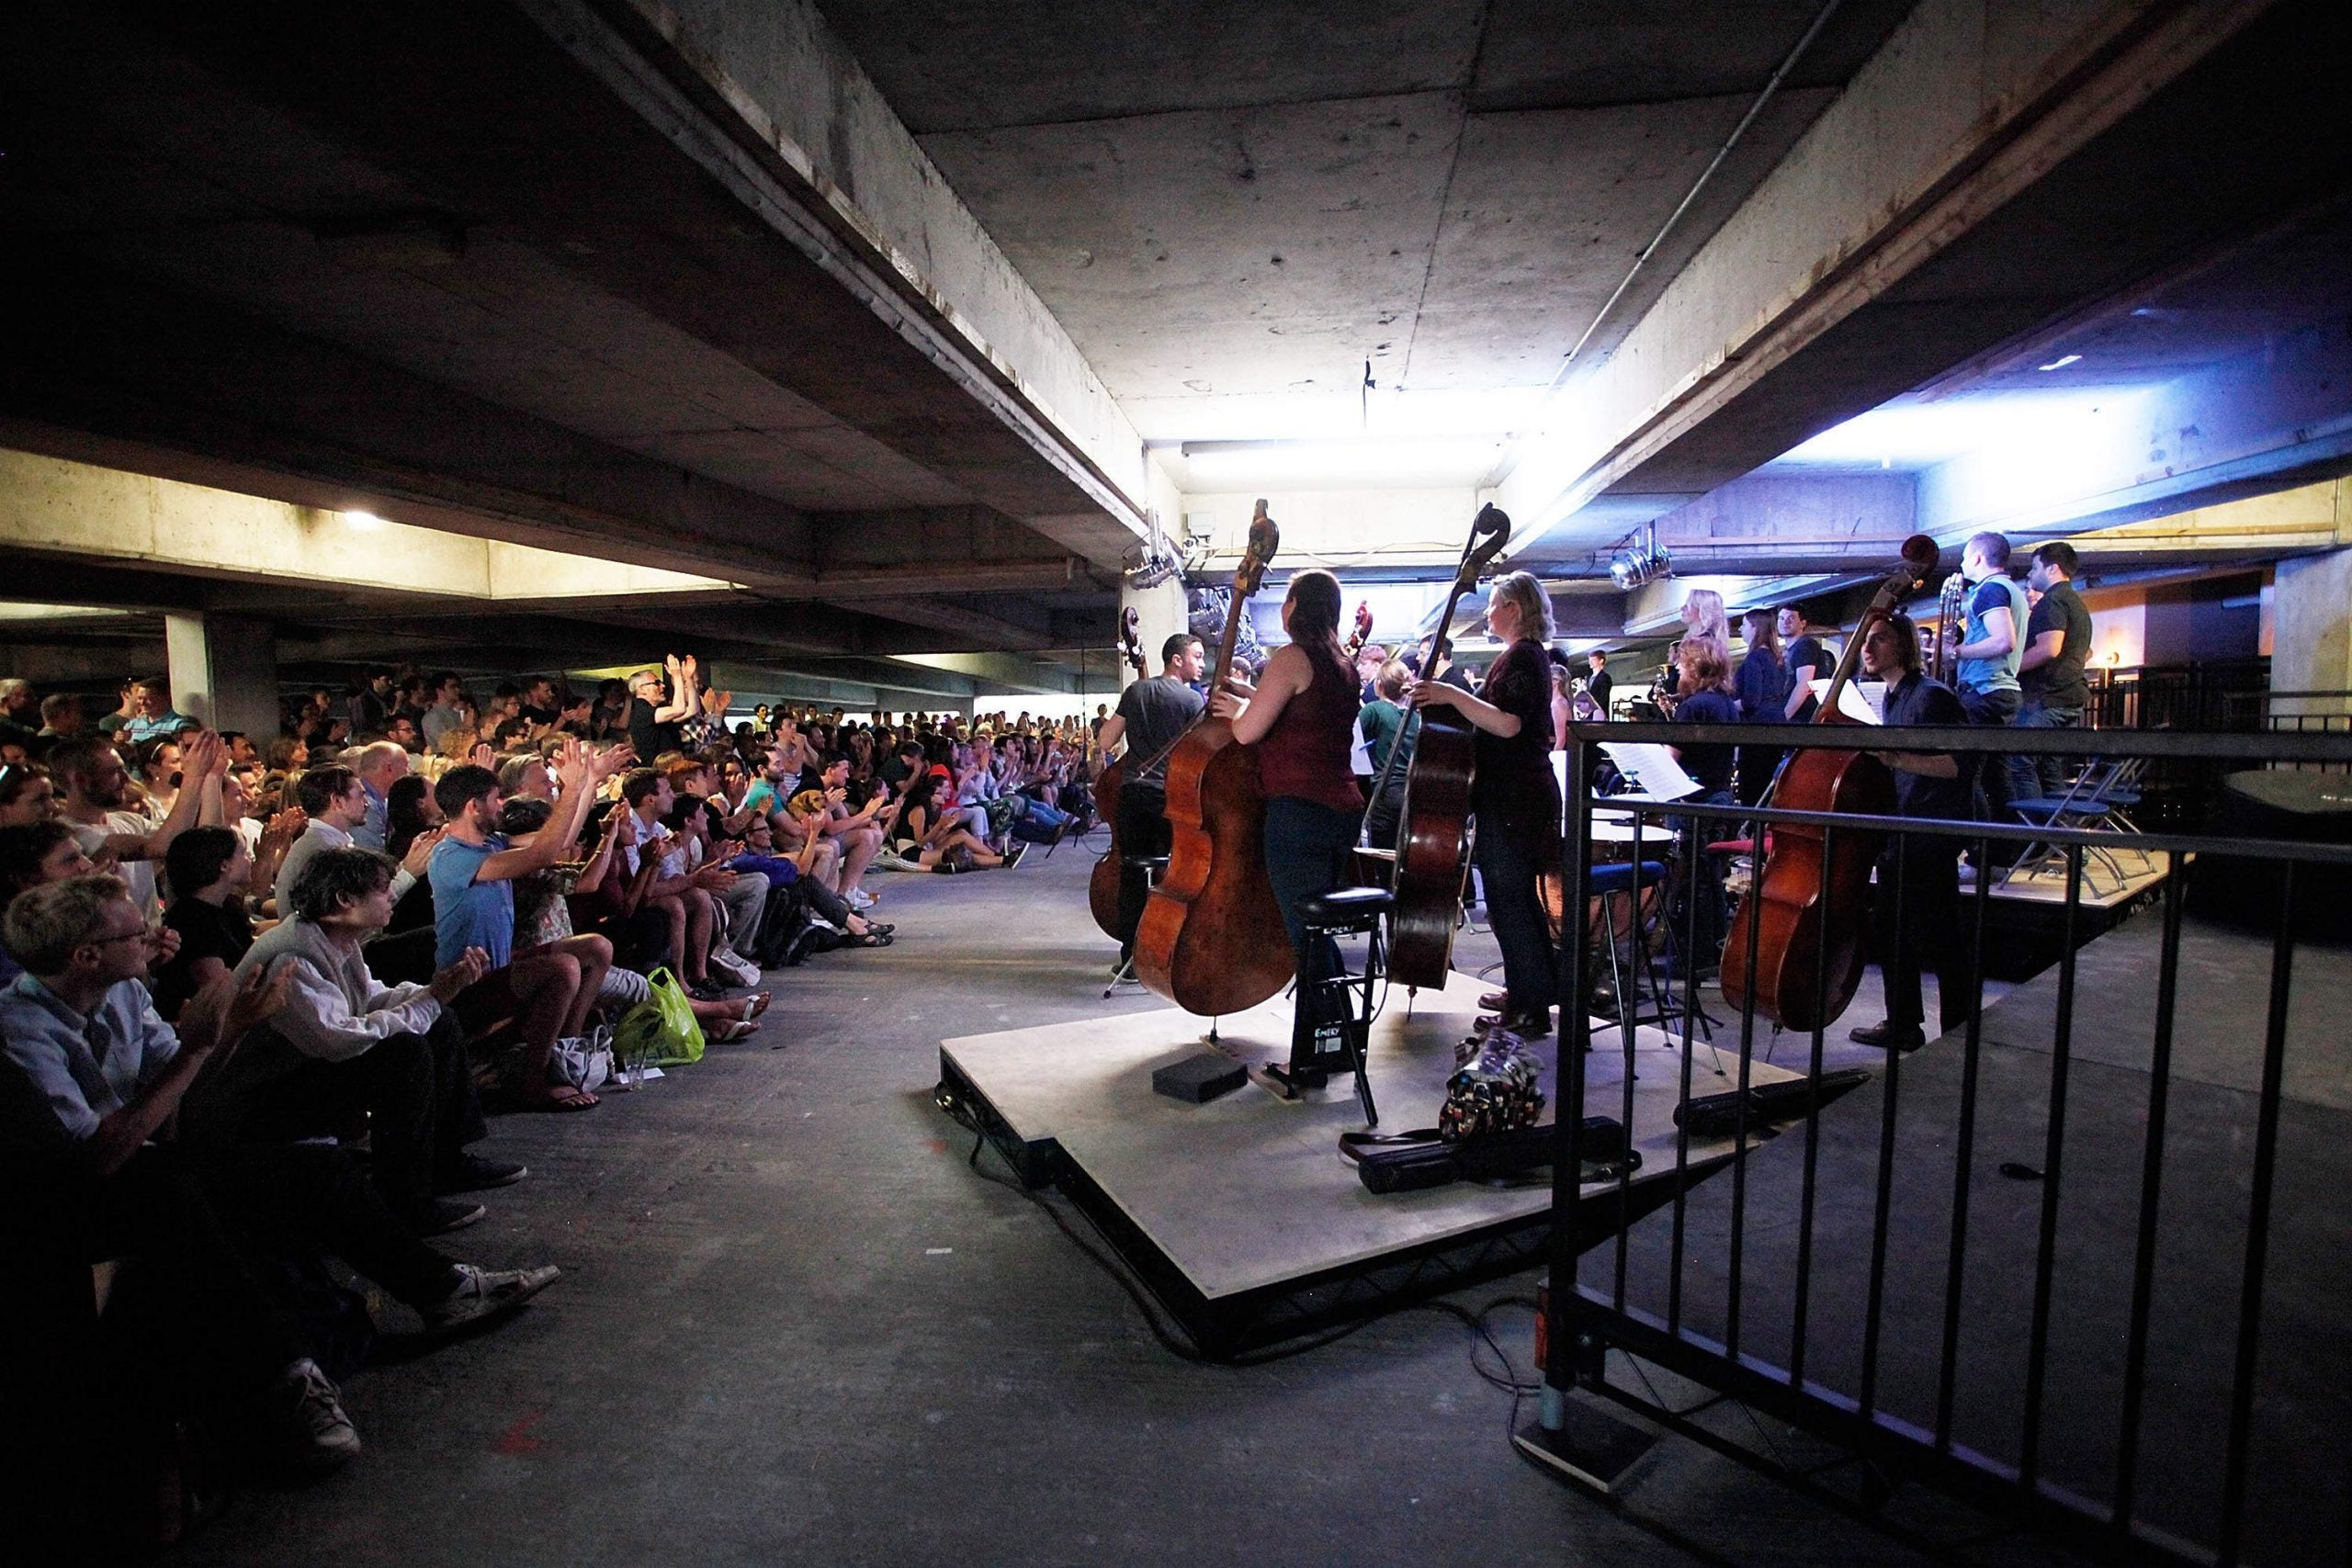 A concrete epiphany from the Multi-Story Orchestra